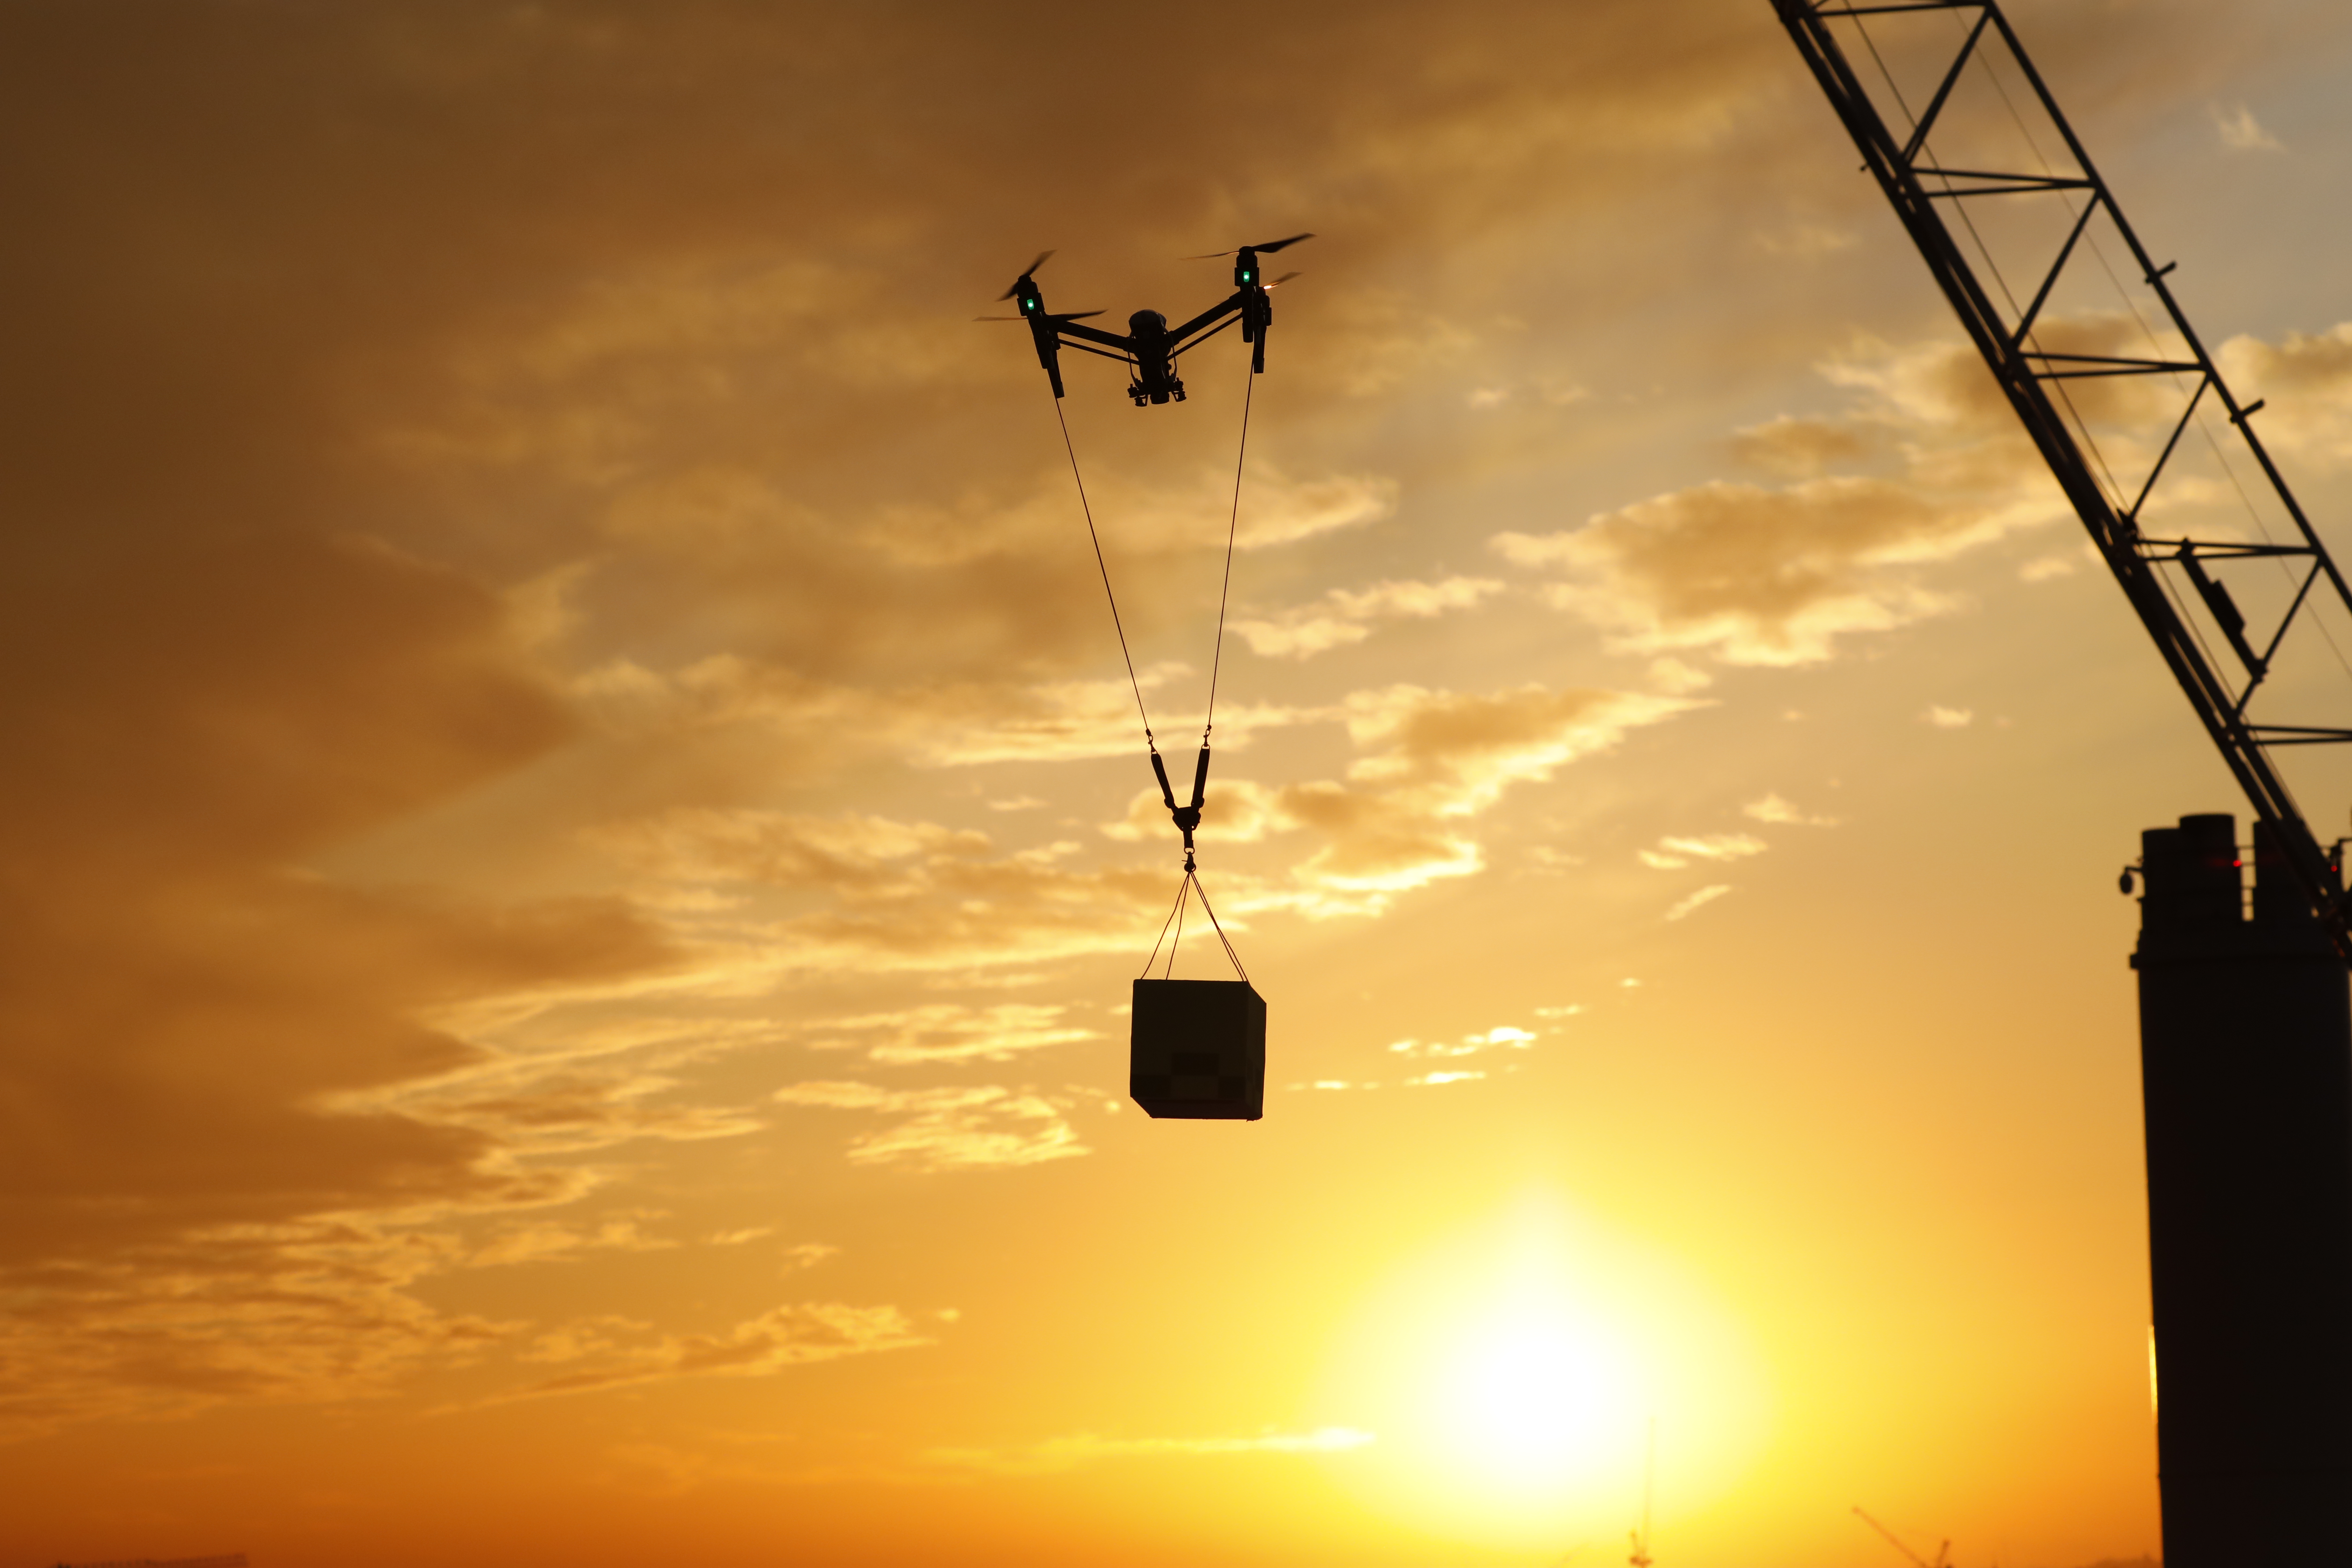 West Midlands flying high with UK drone technology trial